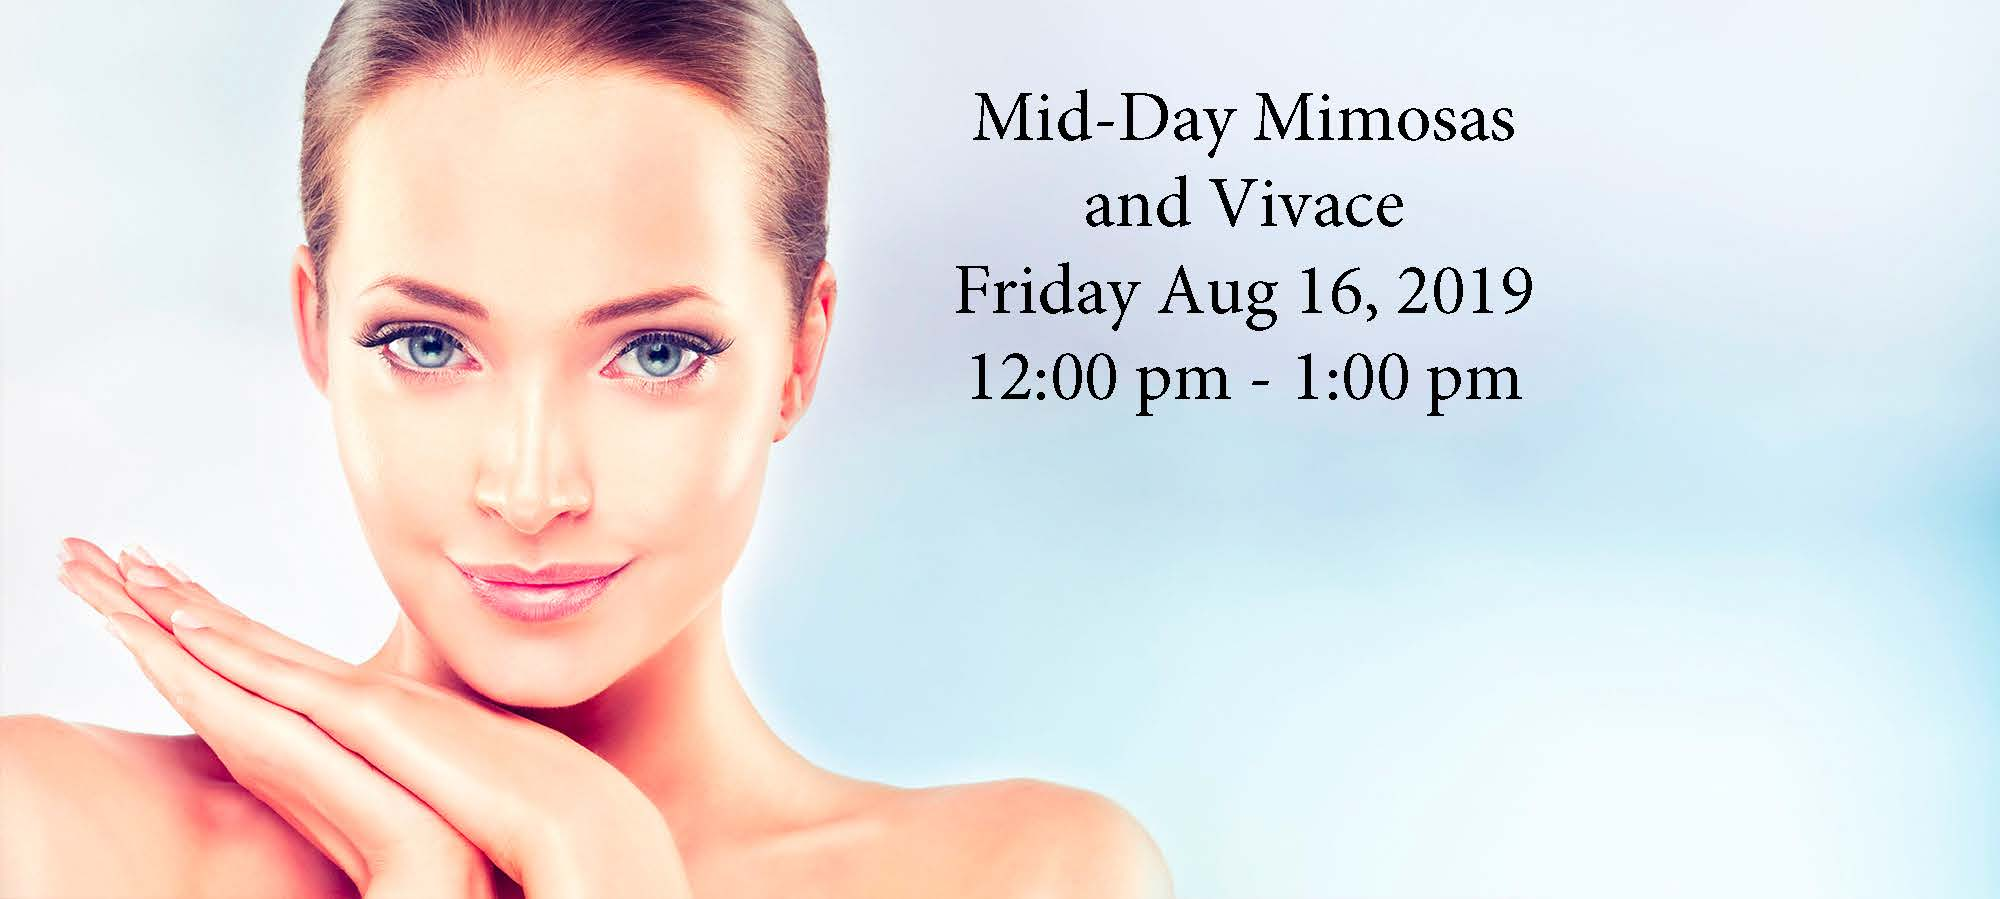 Mid-Day Mimosas and Vivace - South Lake Womens Healthcare